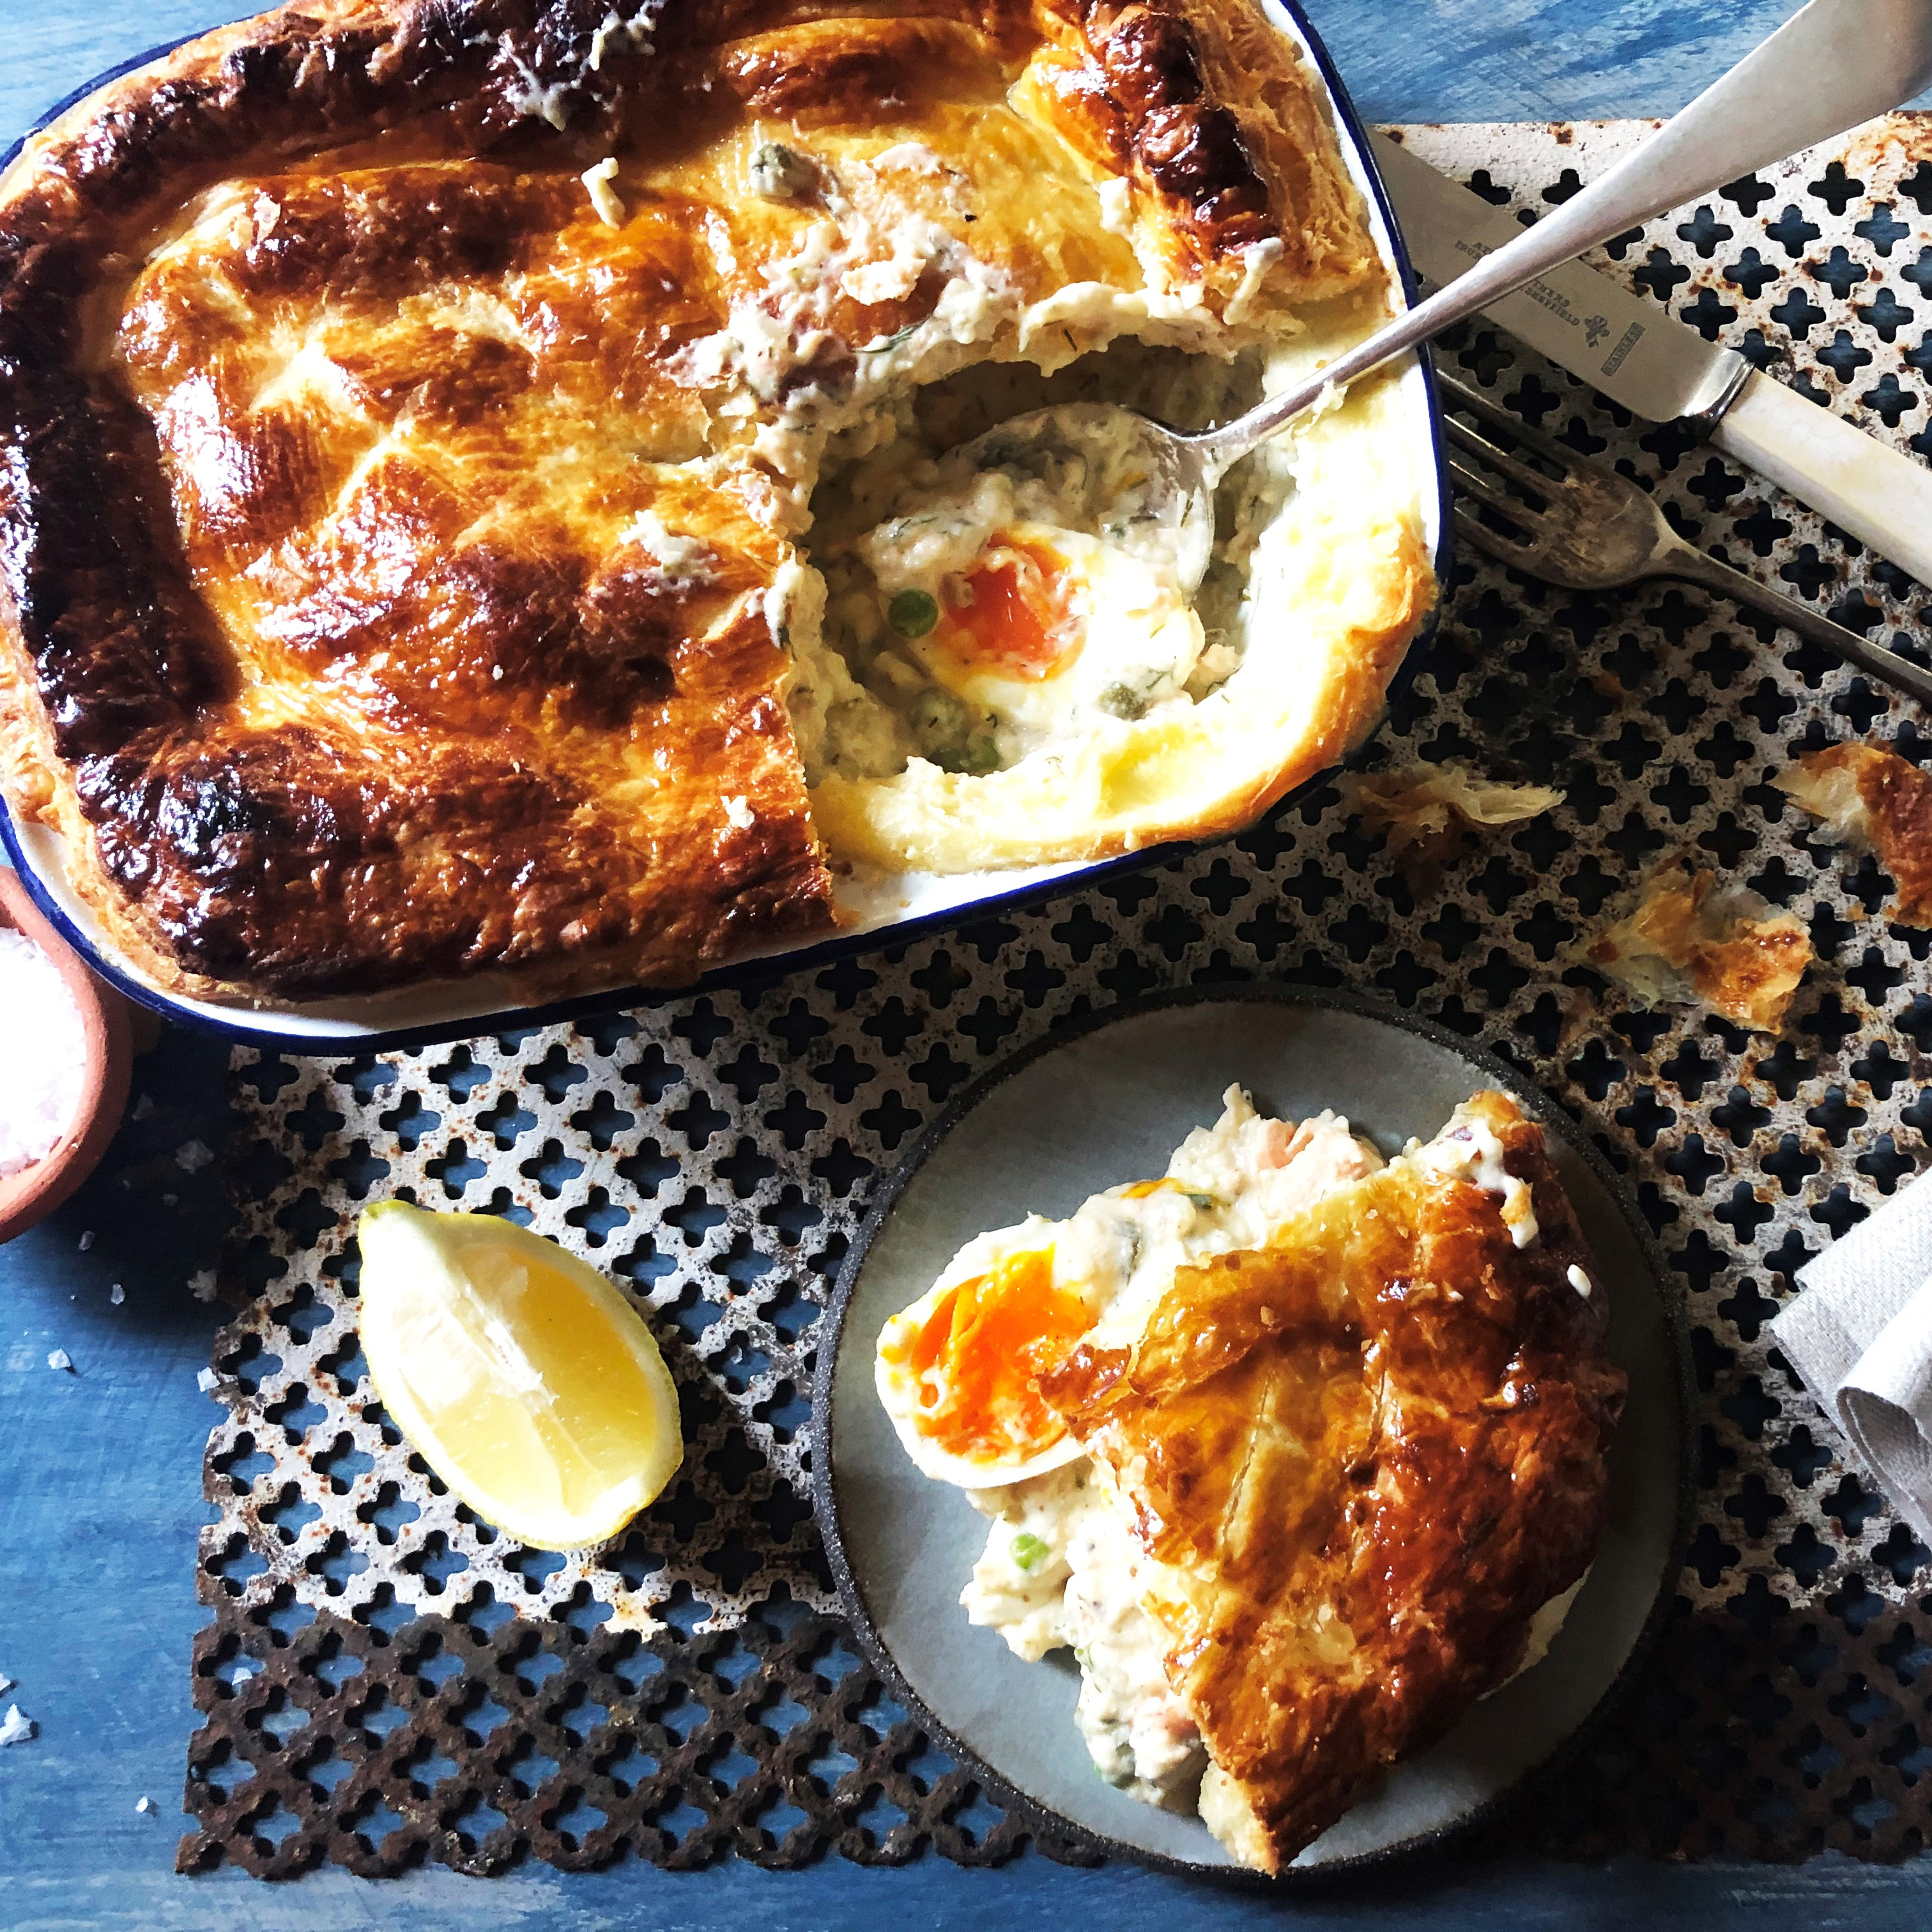 Salmon, Prawn and British Blue Egg Fish Pie with Puff Pastry Top